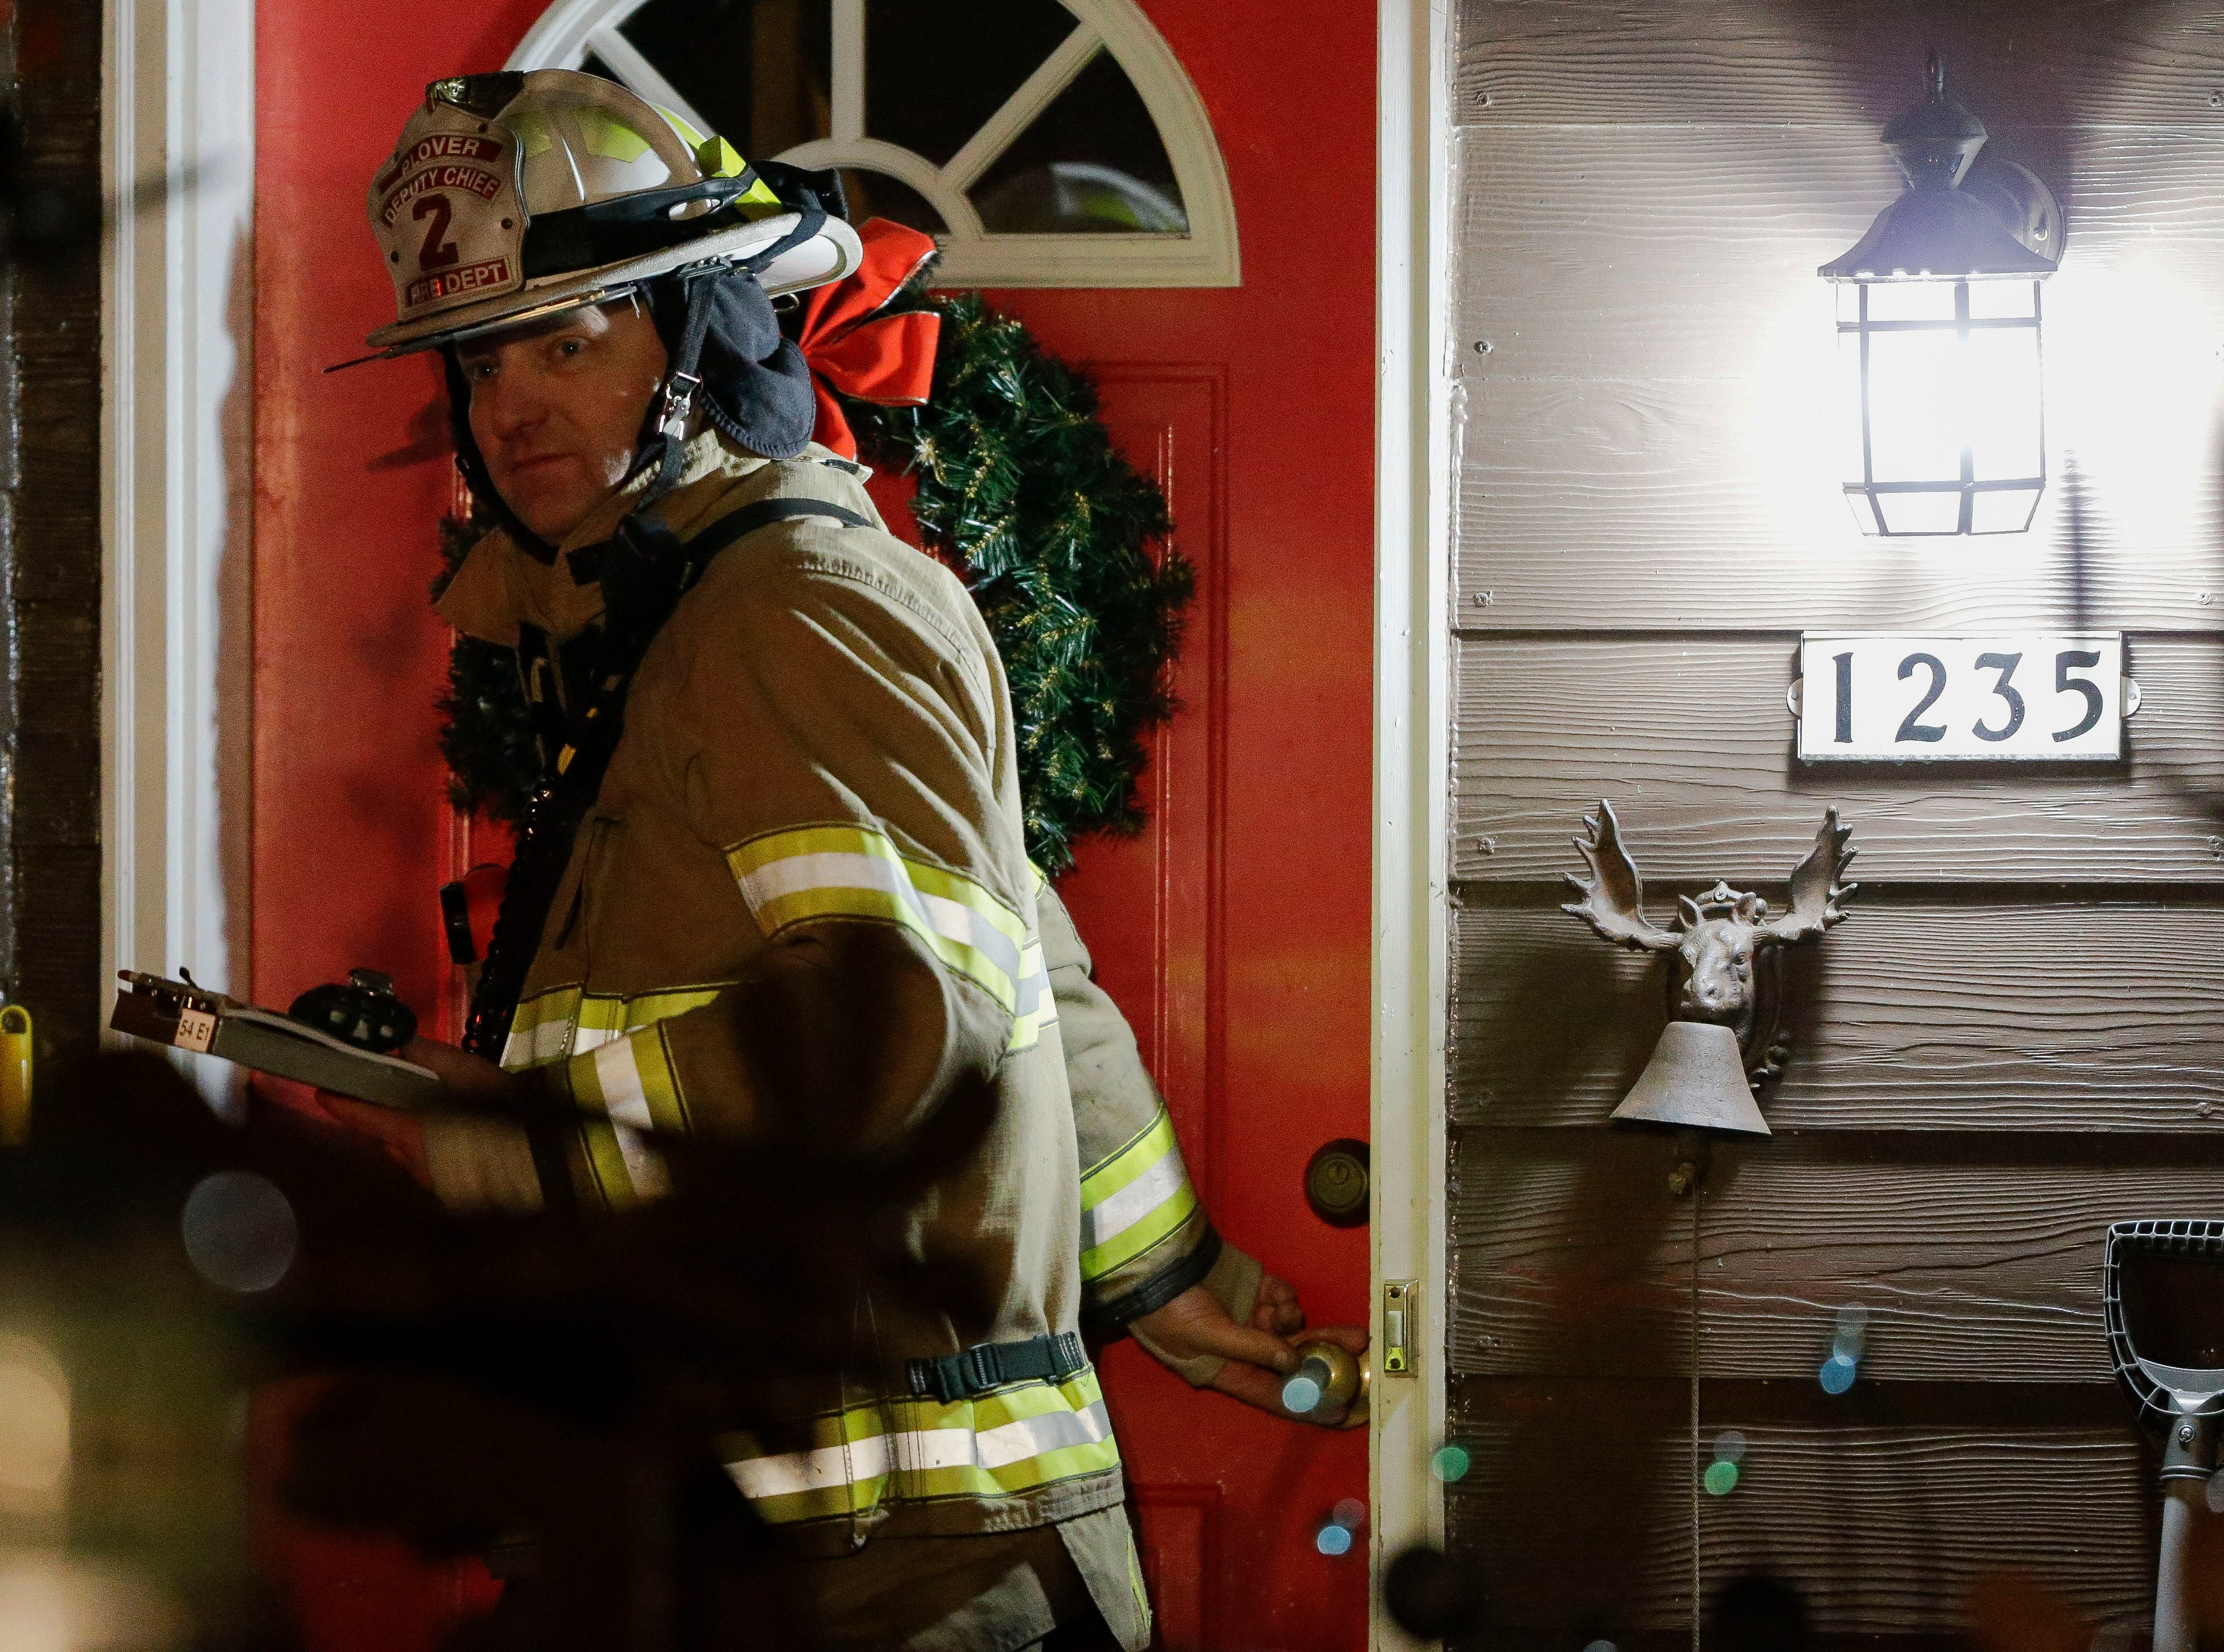 Plover Deputy Fire Chief Ken Voss exits a house on Thursday, January 17, 2019, at 1235 Meehan Ave. outside Plover, Wis. Tork Mason/USA TODAY NETWORK-Wisconsin